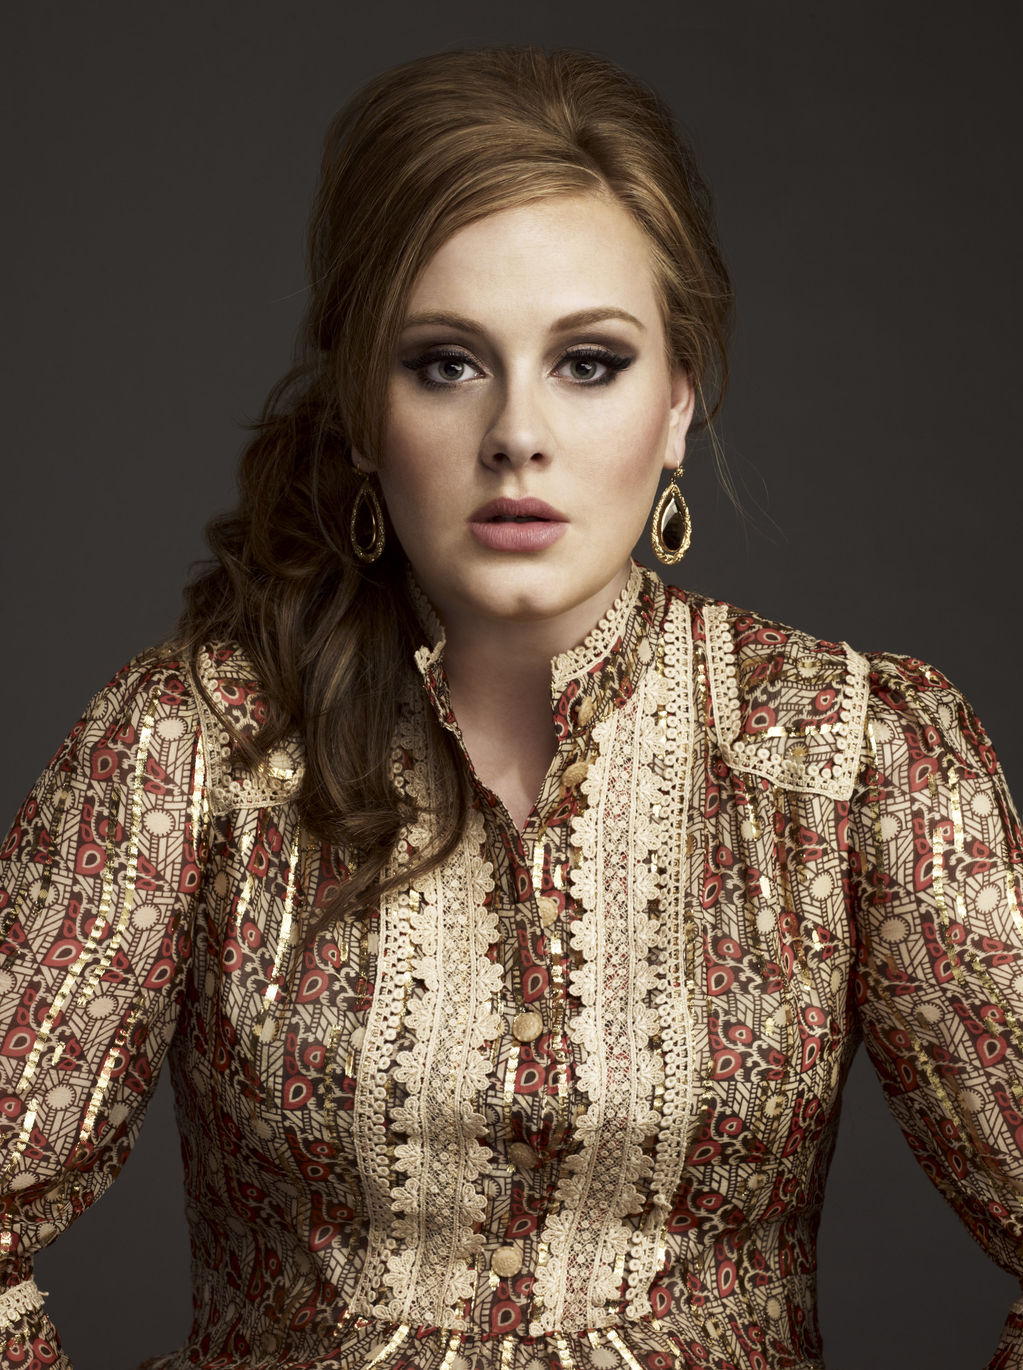 Living Not Existing : Adele Singer Speaks About Her Figure